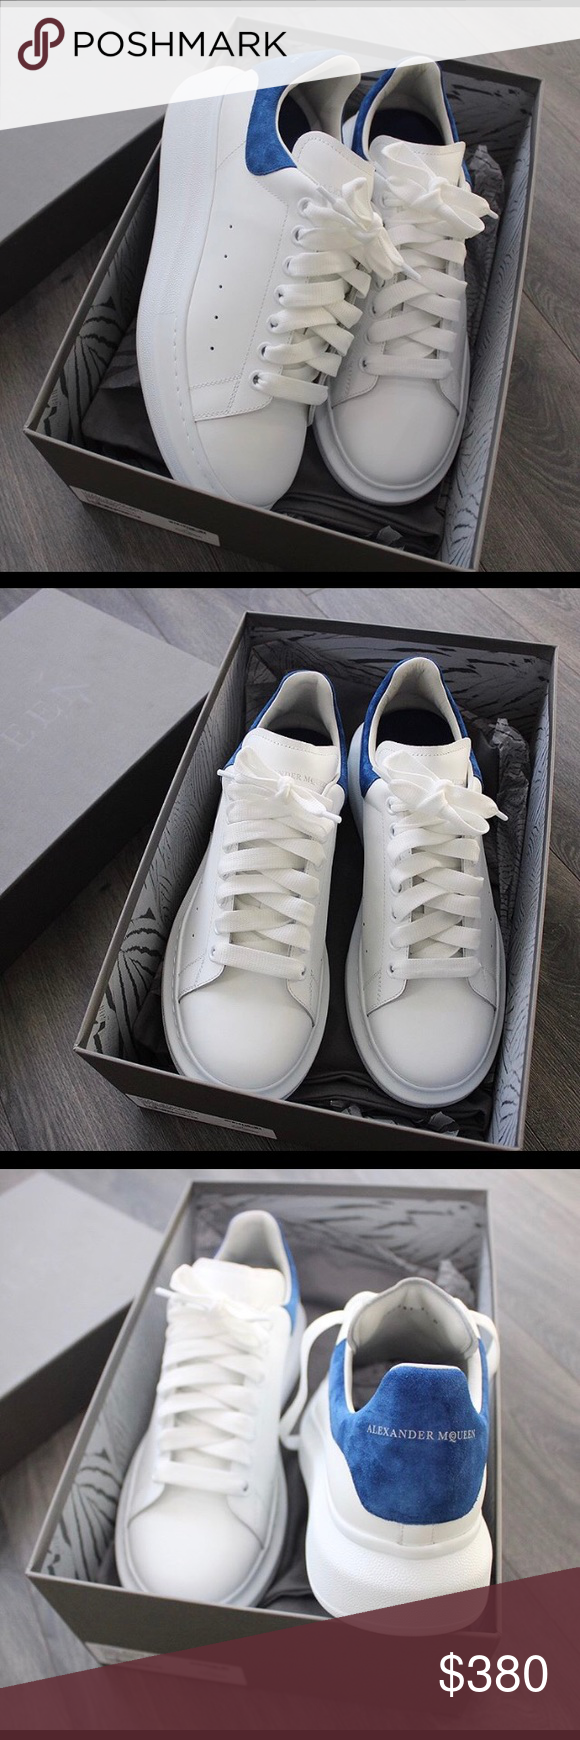 7b33eedc86e ⚪️Alexander McQueen Sneakers⚪ ⚪ ⚪ 100%AUTHENTIC No Fakes Sold